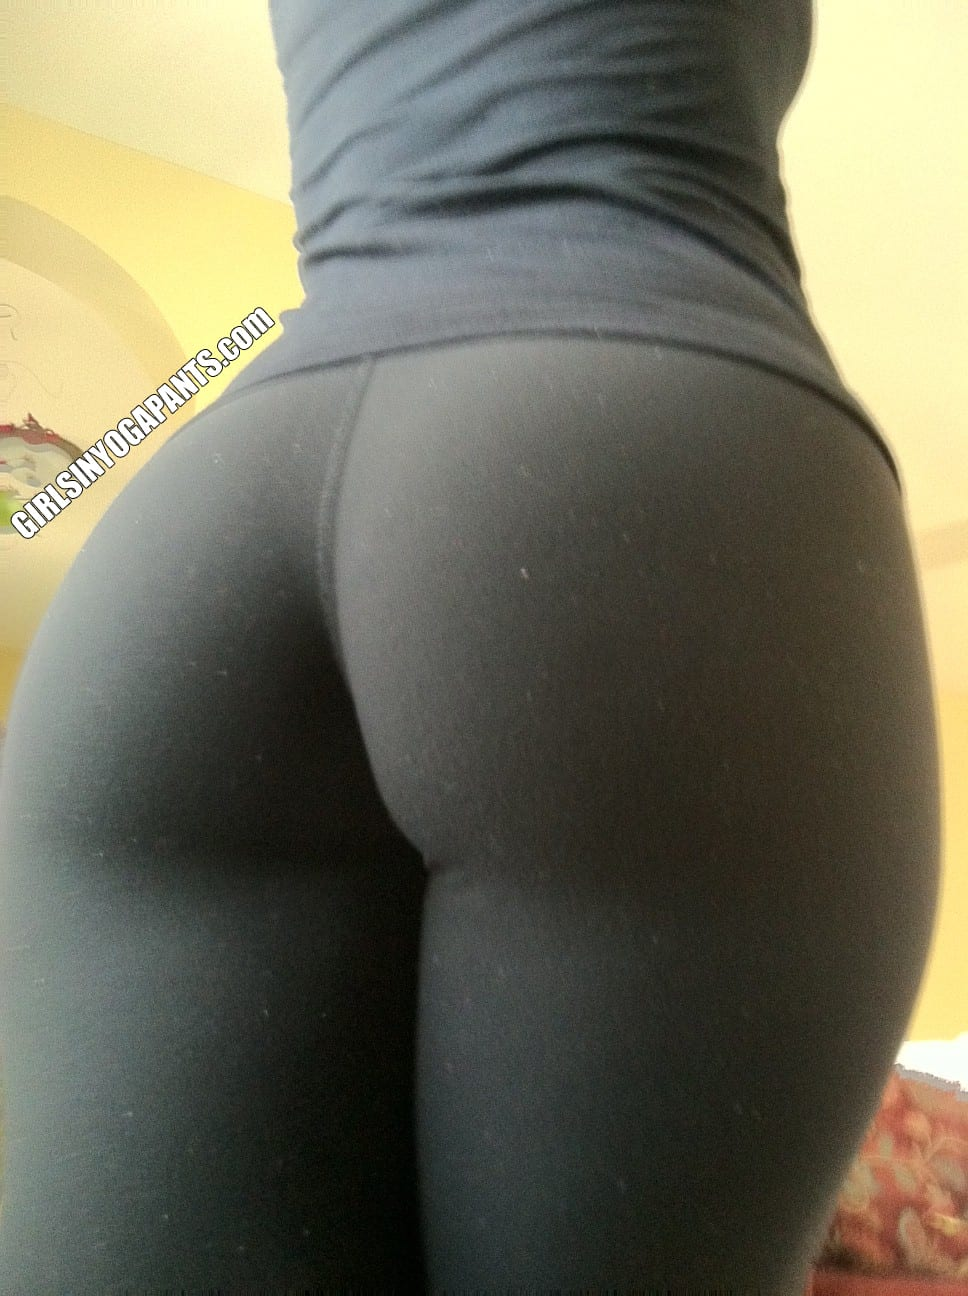 Cougar Tight Ass